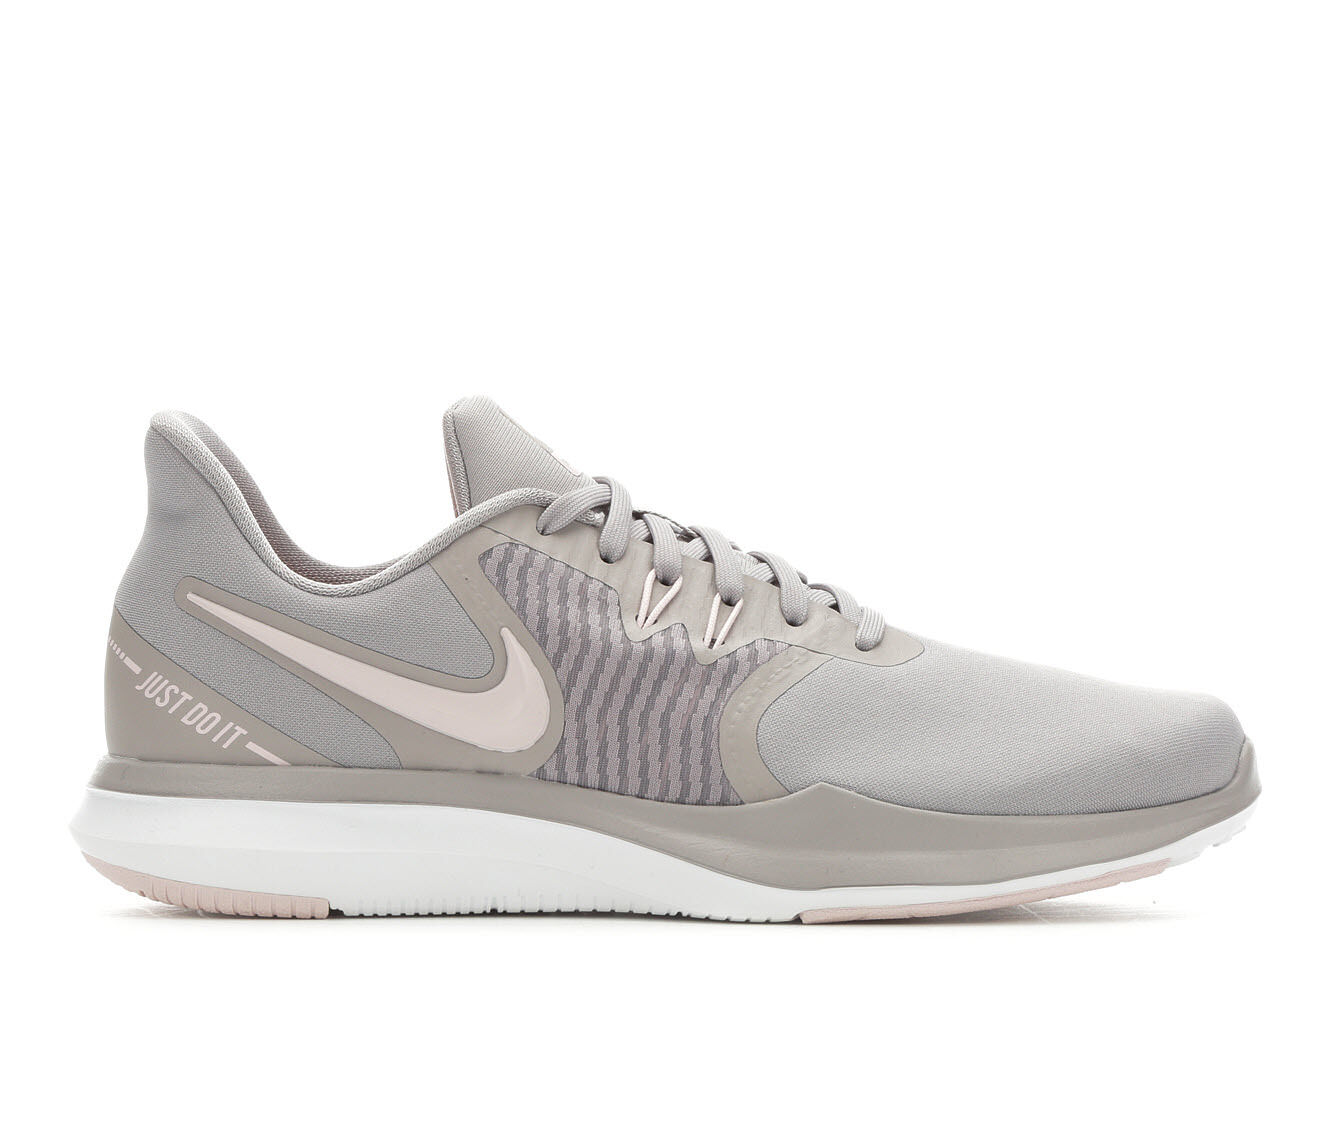 Women's Nike In-Season TR 8 Training Shoes Gry/Barely Rose